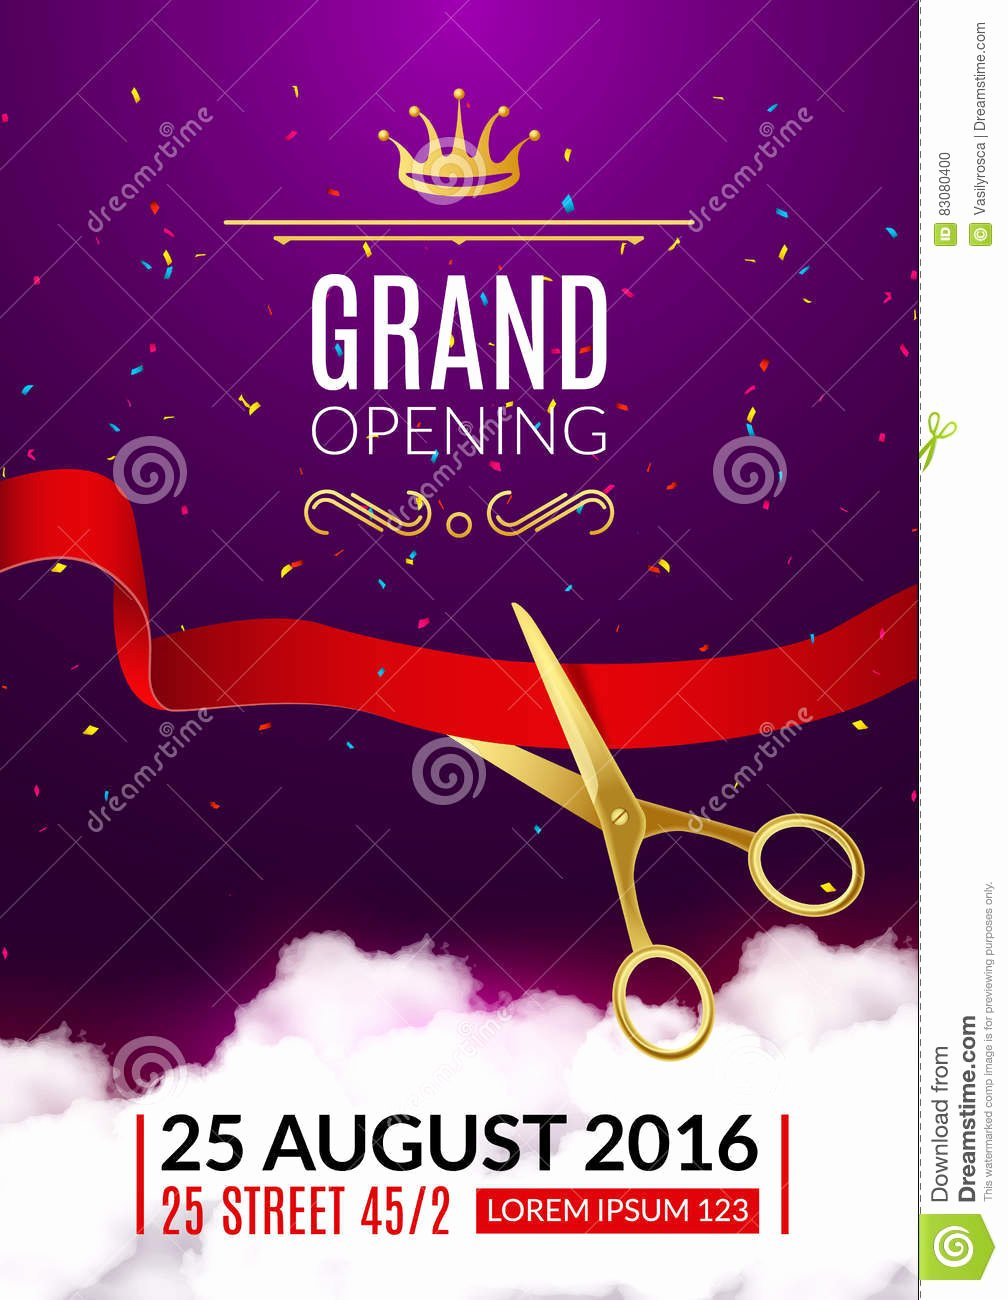 Grand Opening Invitation Card Grand Opening event